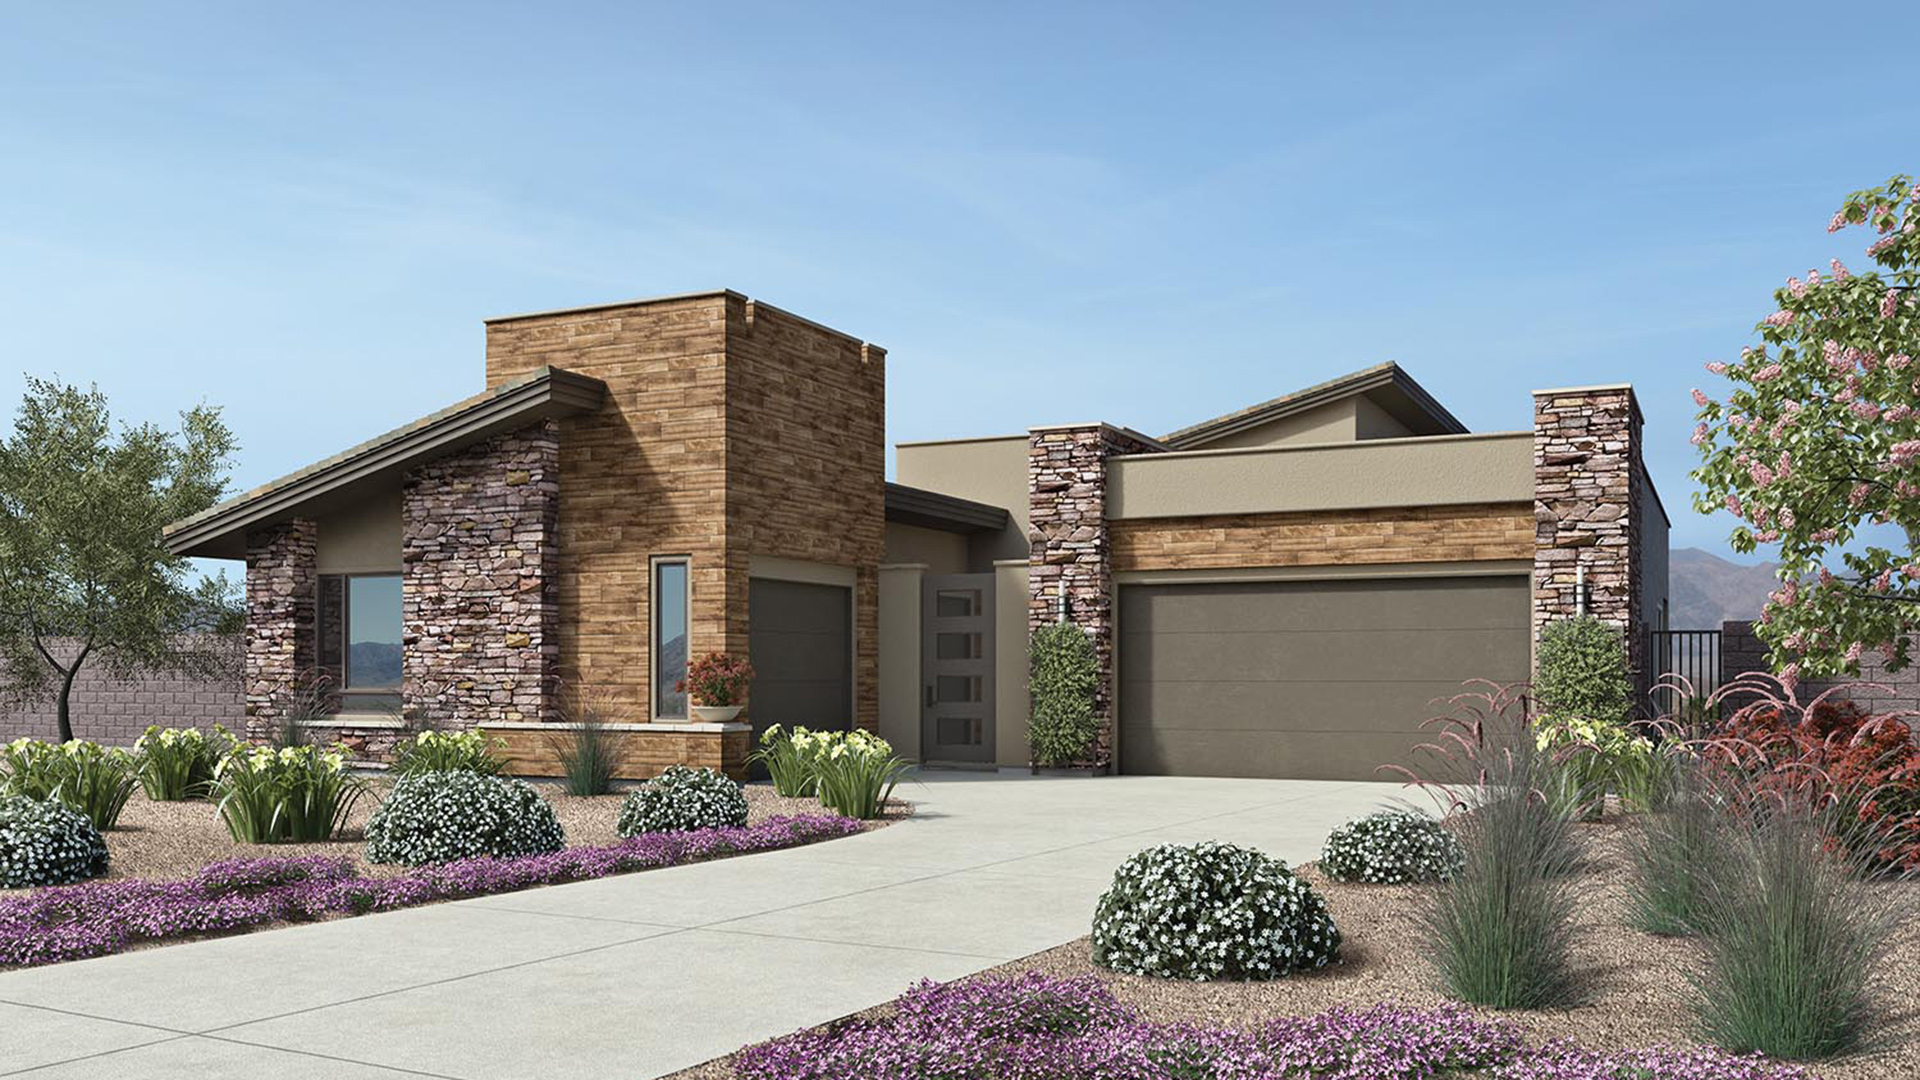 Ironwood quick delivery home indigo desert contemporary for Ironwood homes